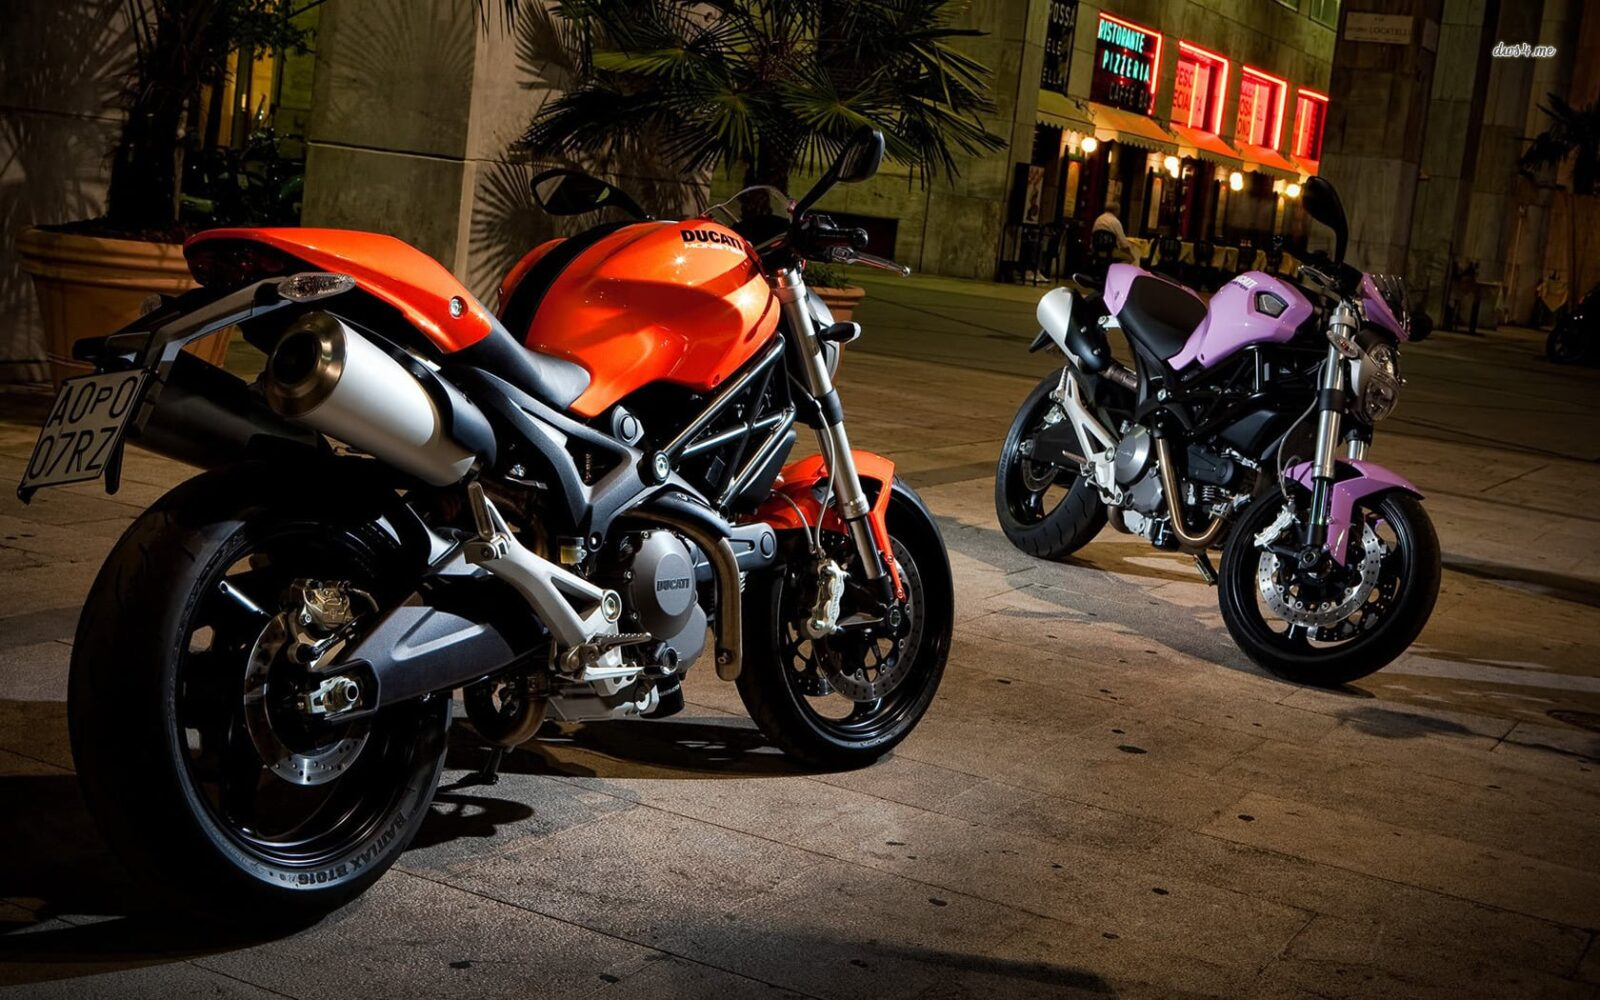 Ducati Monster 696 orange and blue